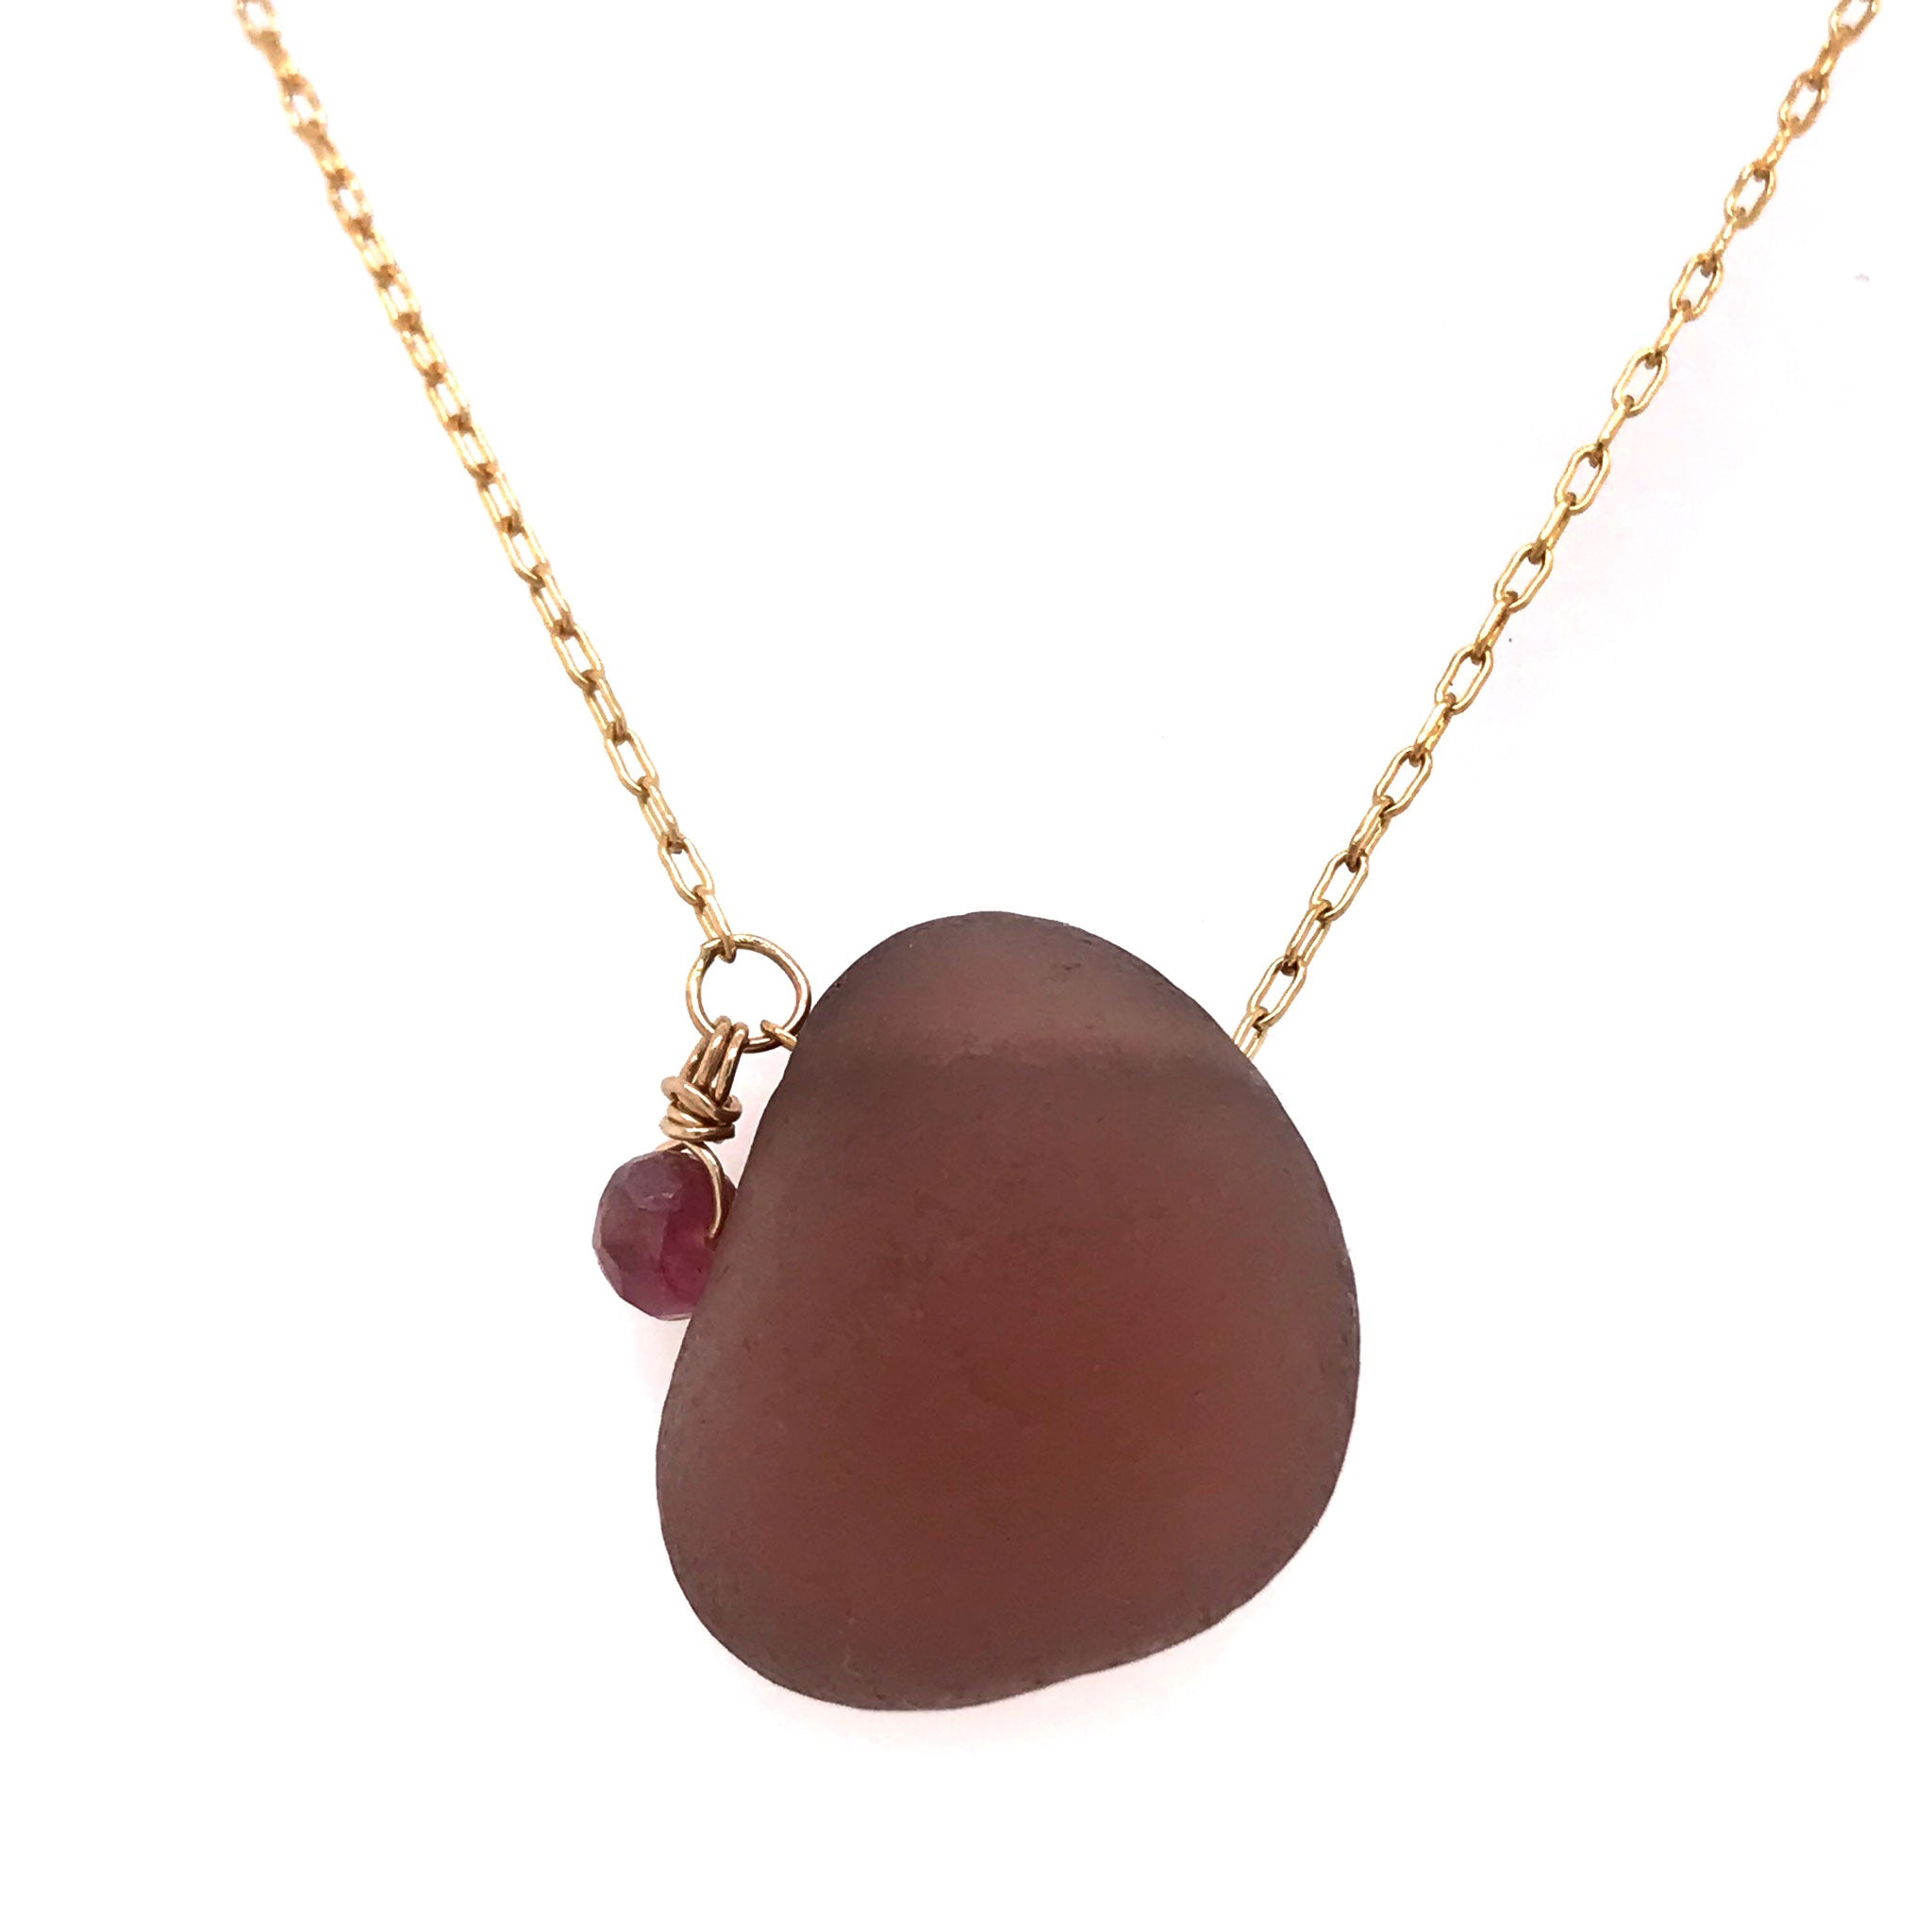 rare colour burgundy seaglass necklace on gold chain Kriket Broadhurst jewellery Christmas gift